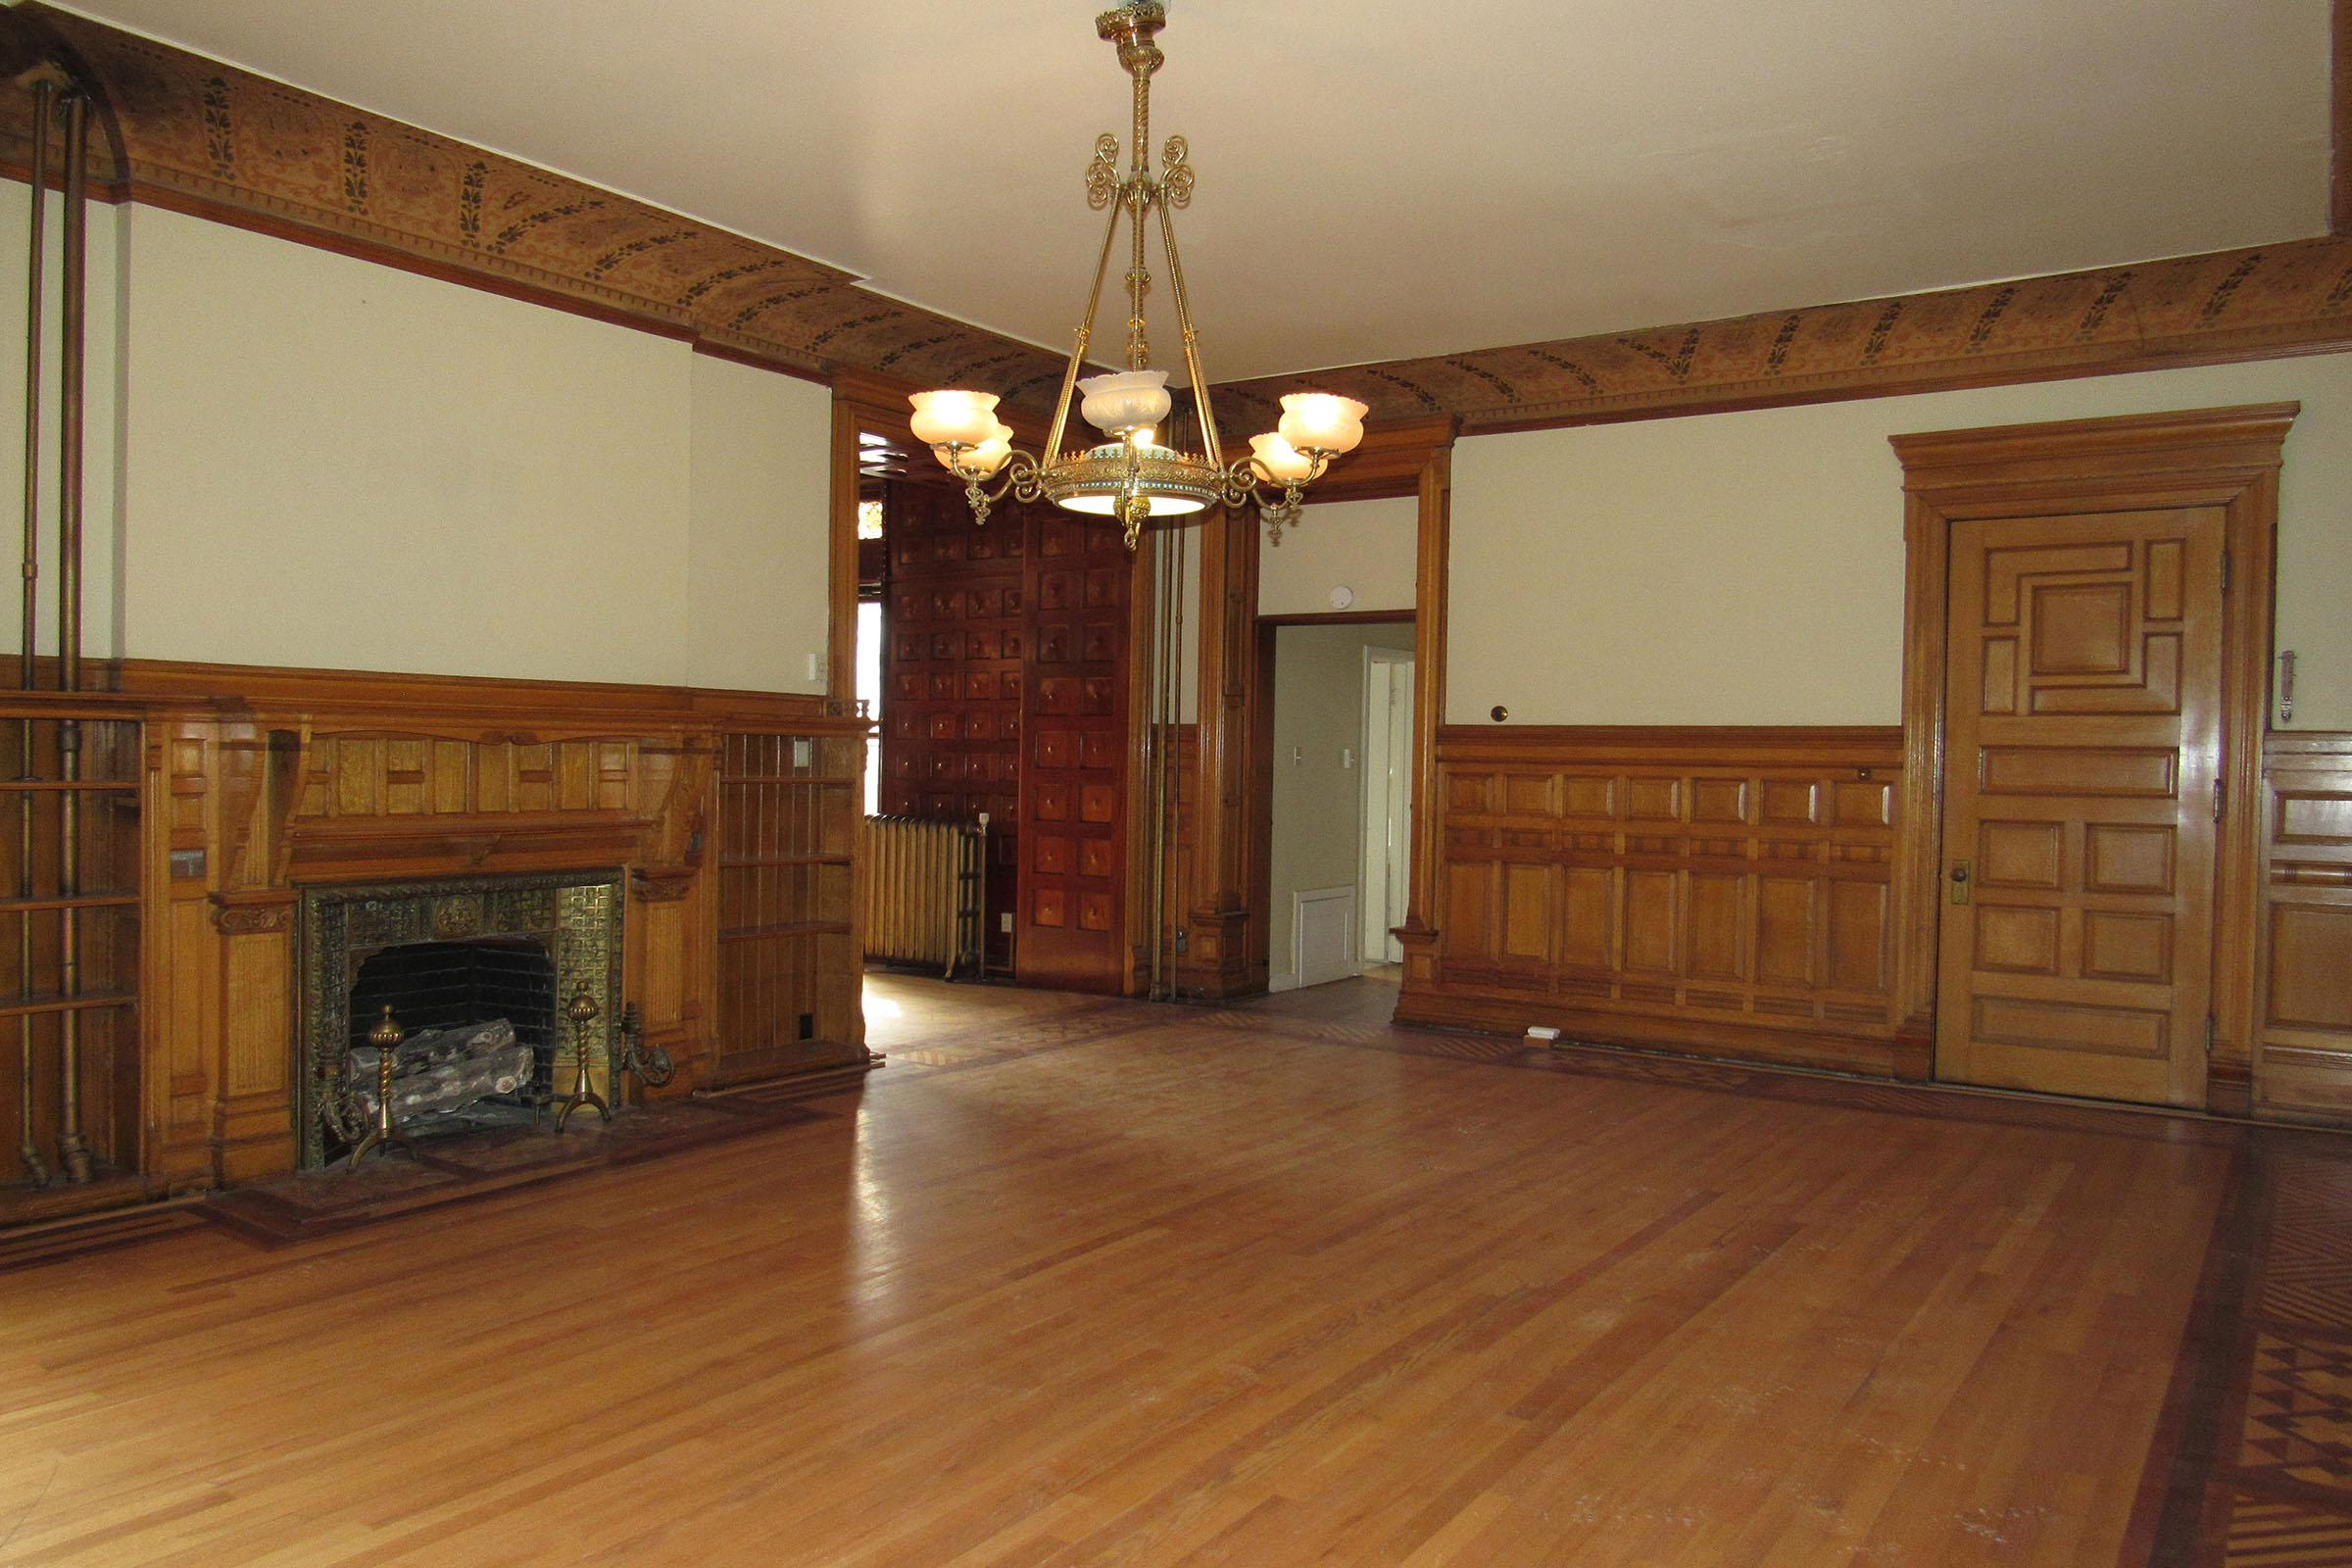 a living room filled with furniture on top of a hard wood floor